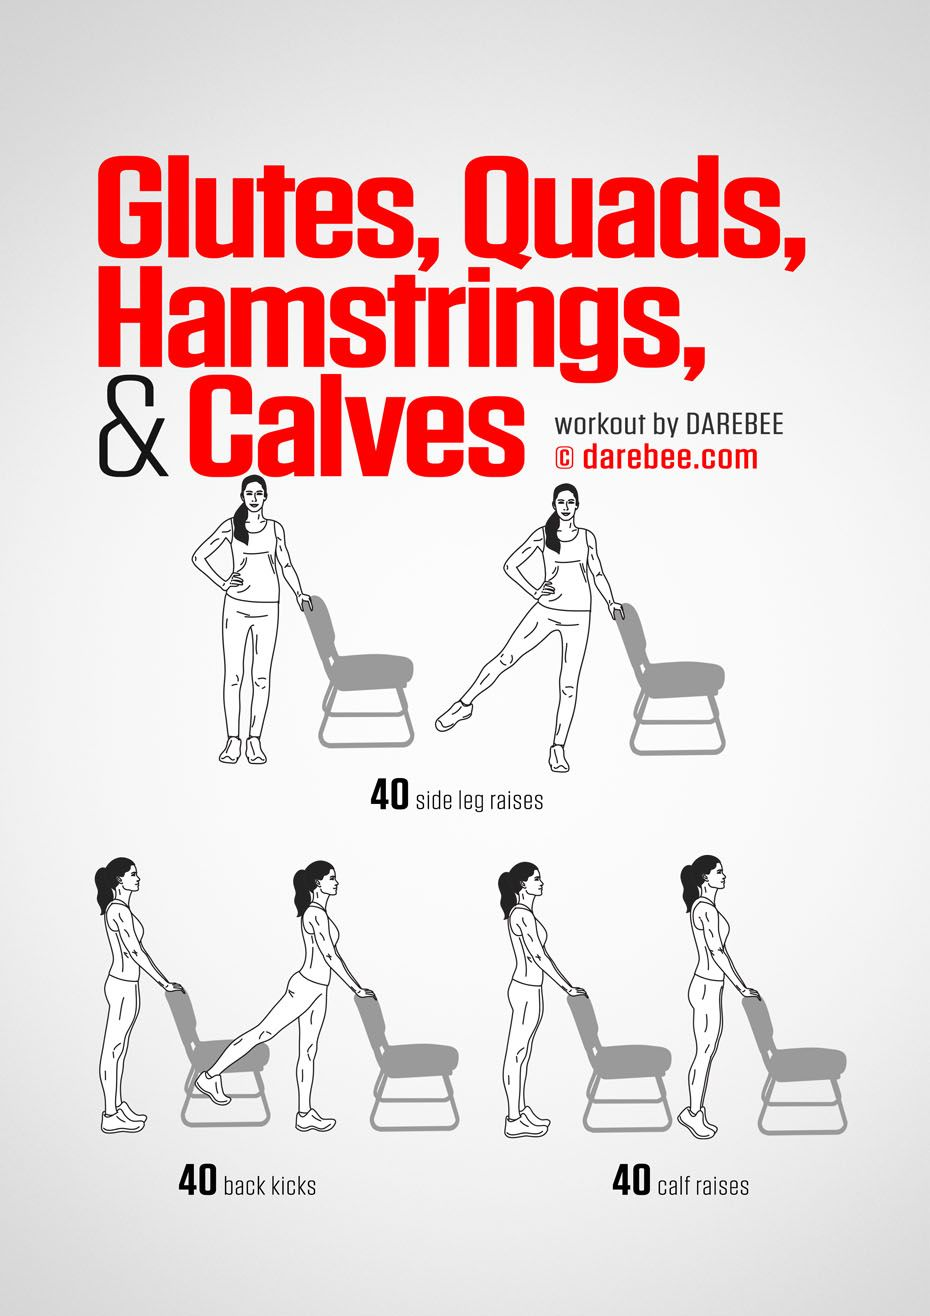 Glutes Quads Hamstrings Amp Calves Workout By Darebee